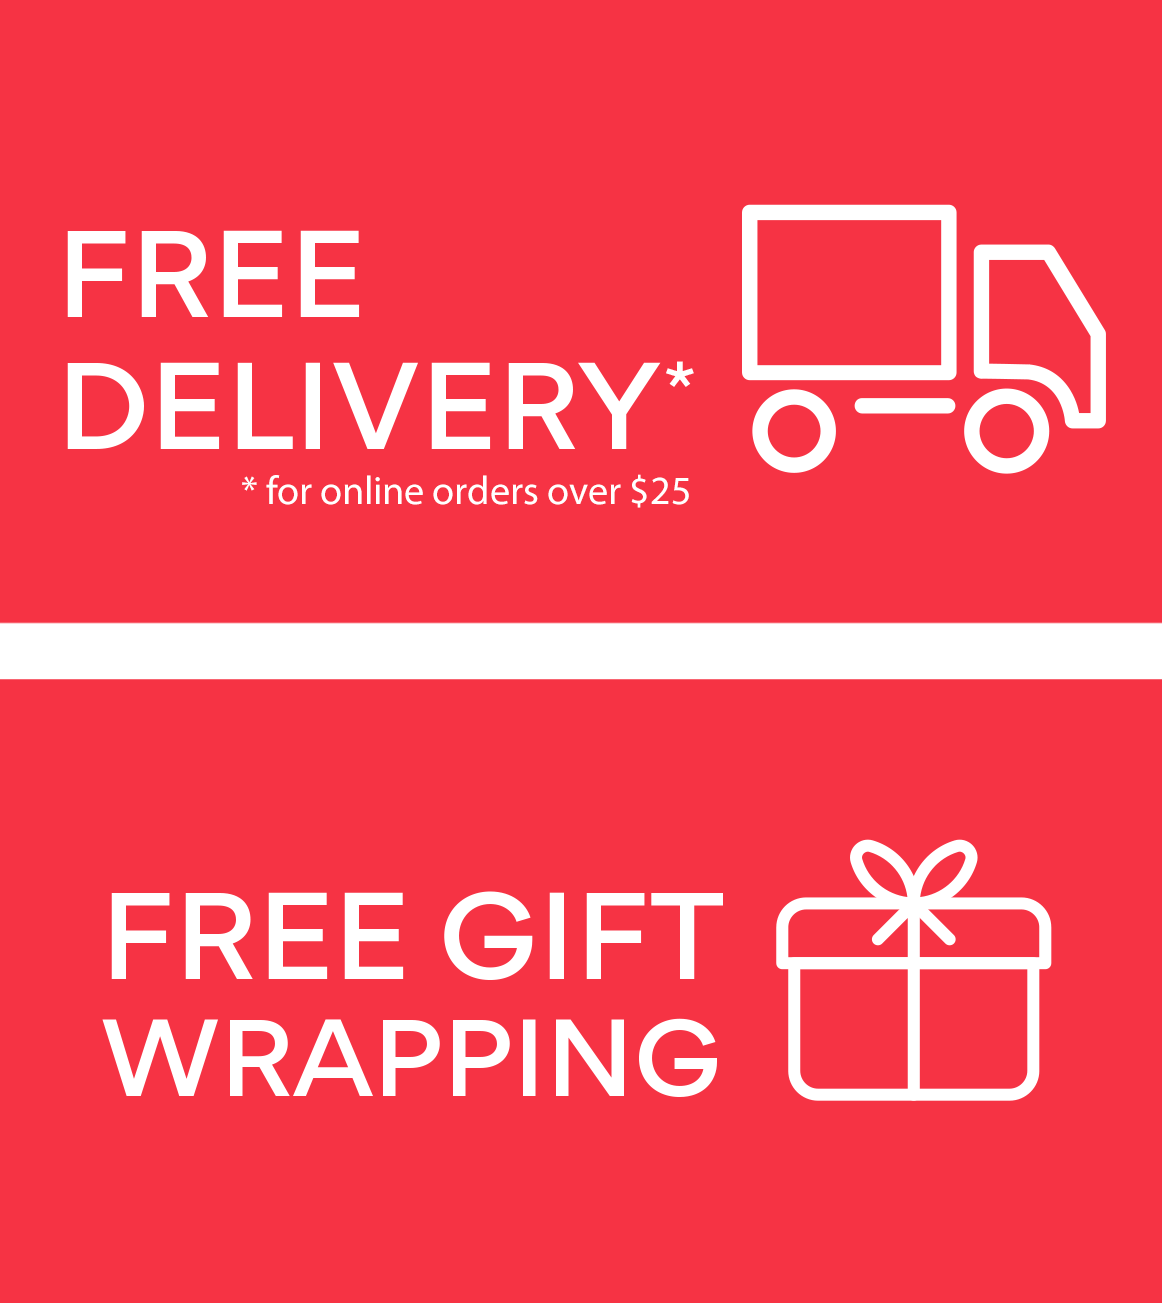 Free delivery & Gift wrapping